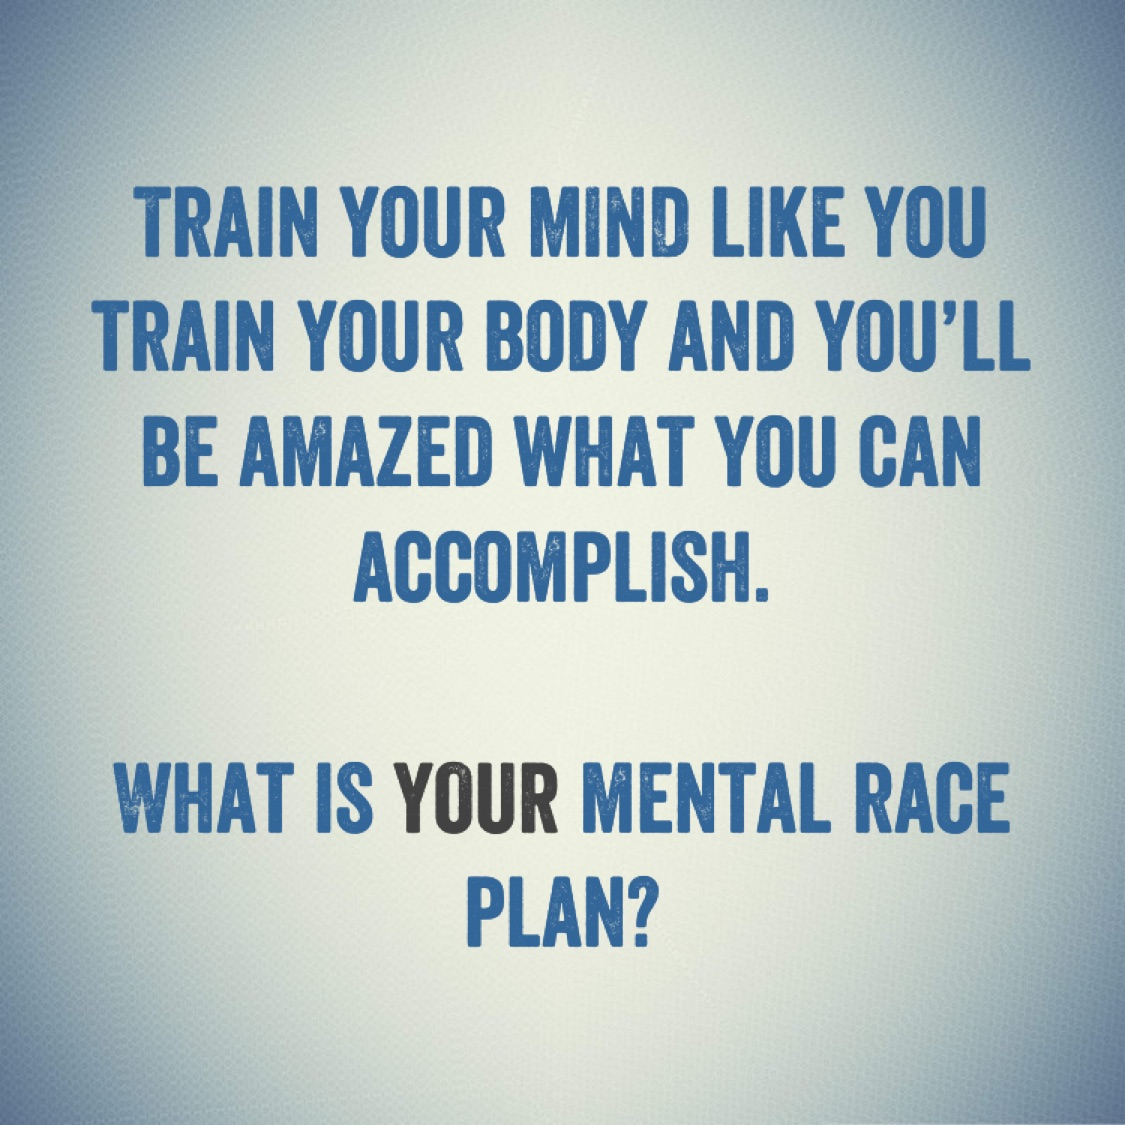 Mindset & Meditation: Your Mental Race Plan